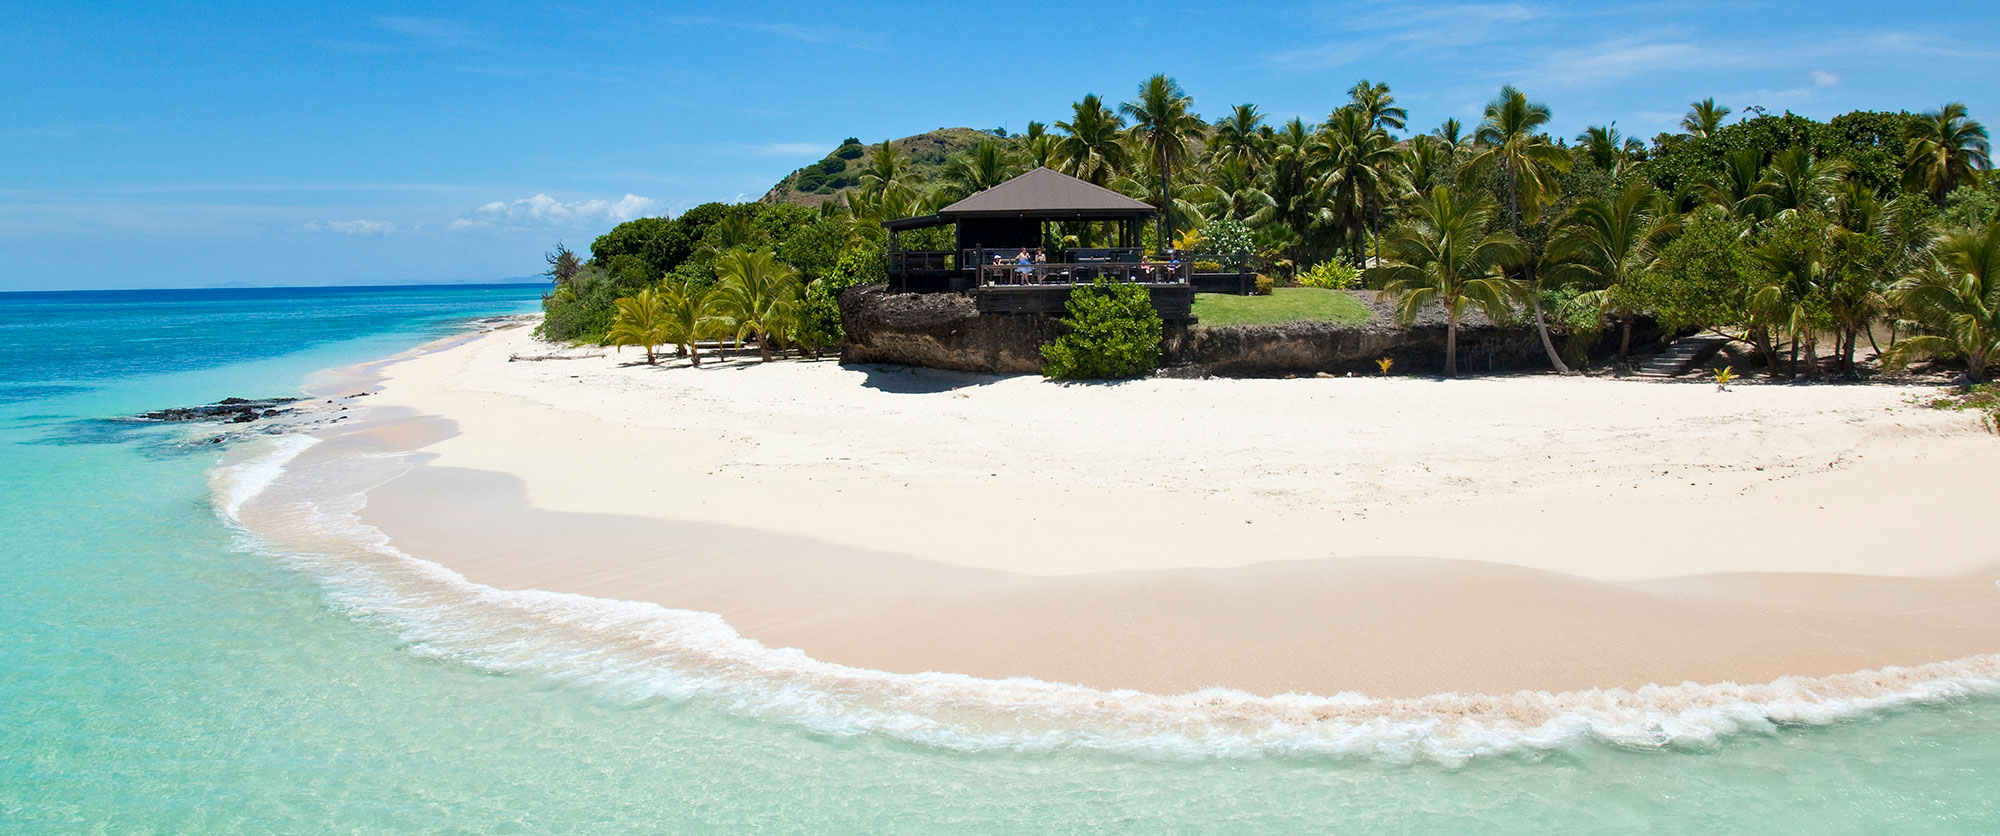 Destination Wedding: VOMO Island Fiji